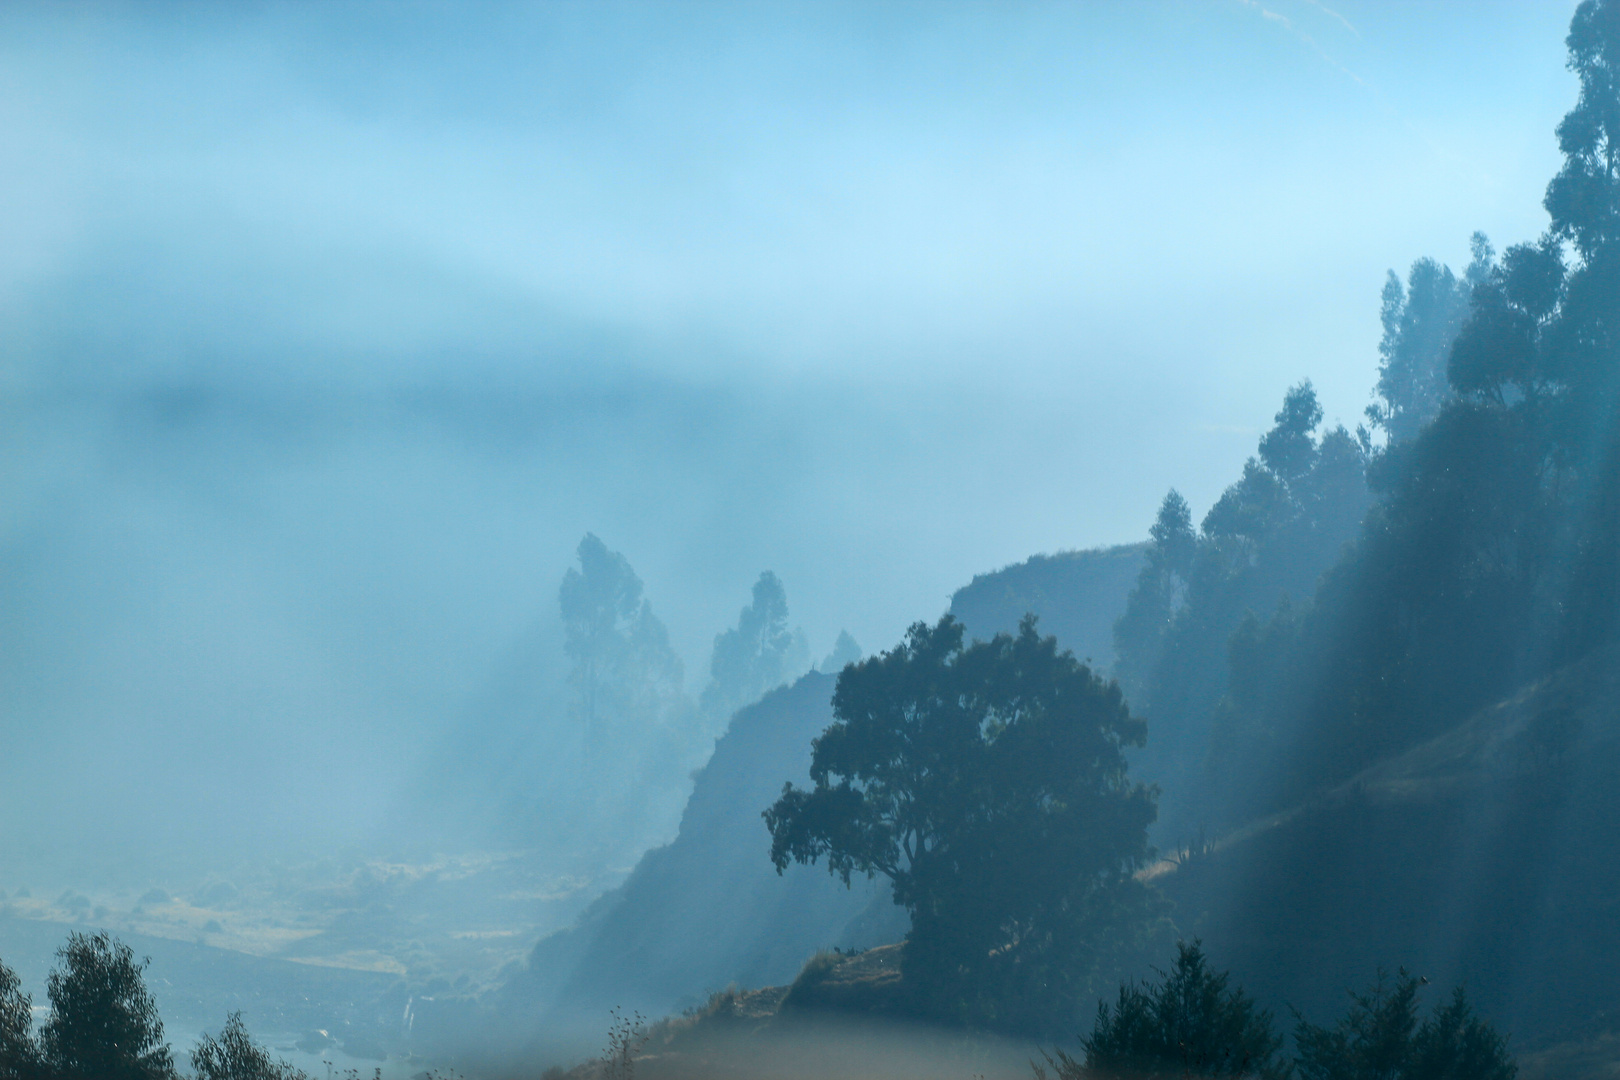 Colca Canyon in the morning mist